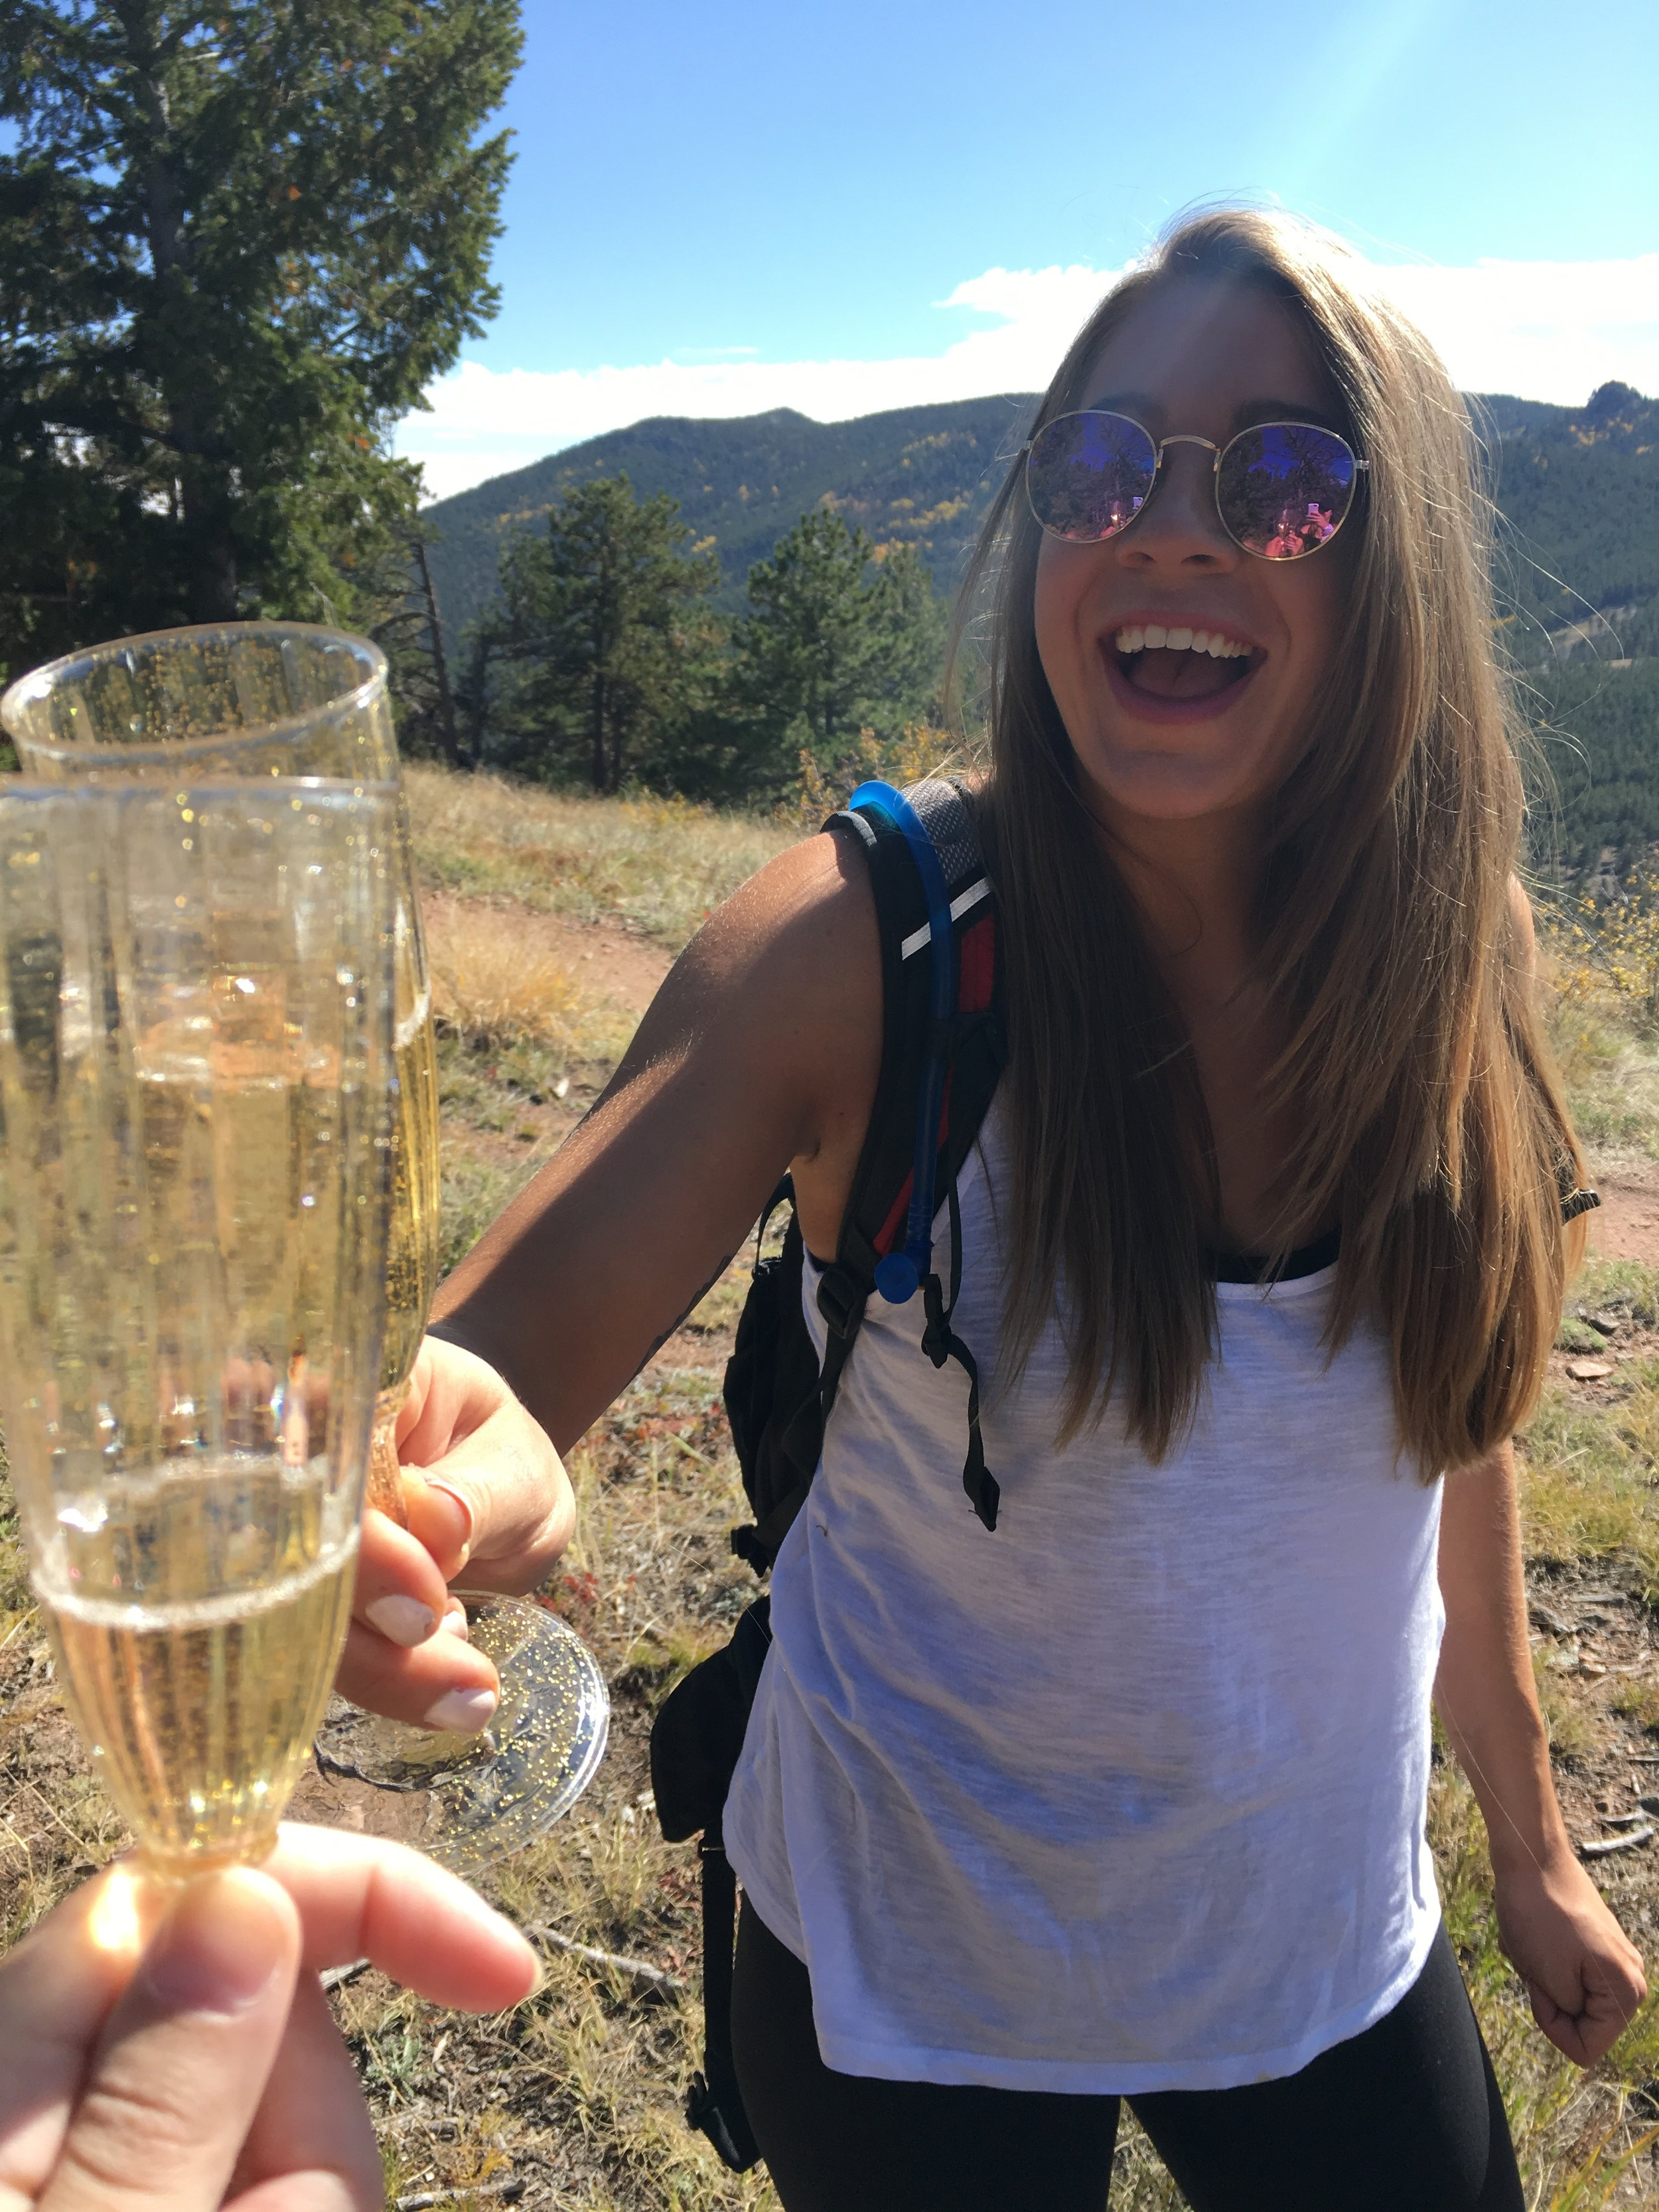 Golden Gate Canyon State Park birthday cheers!